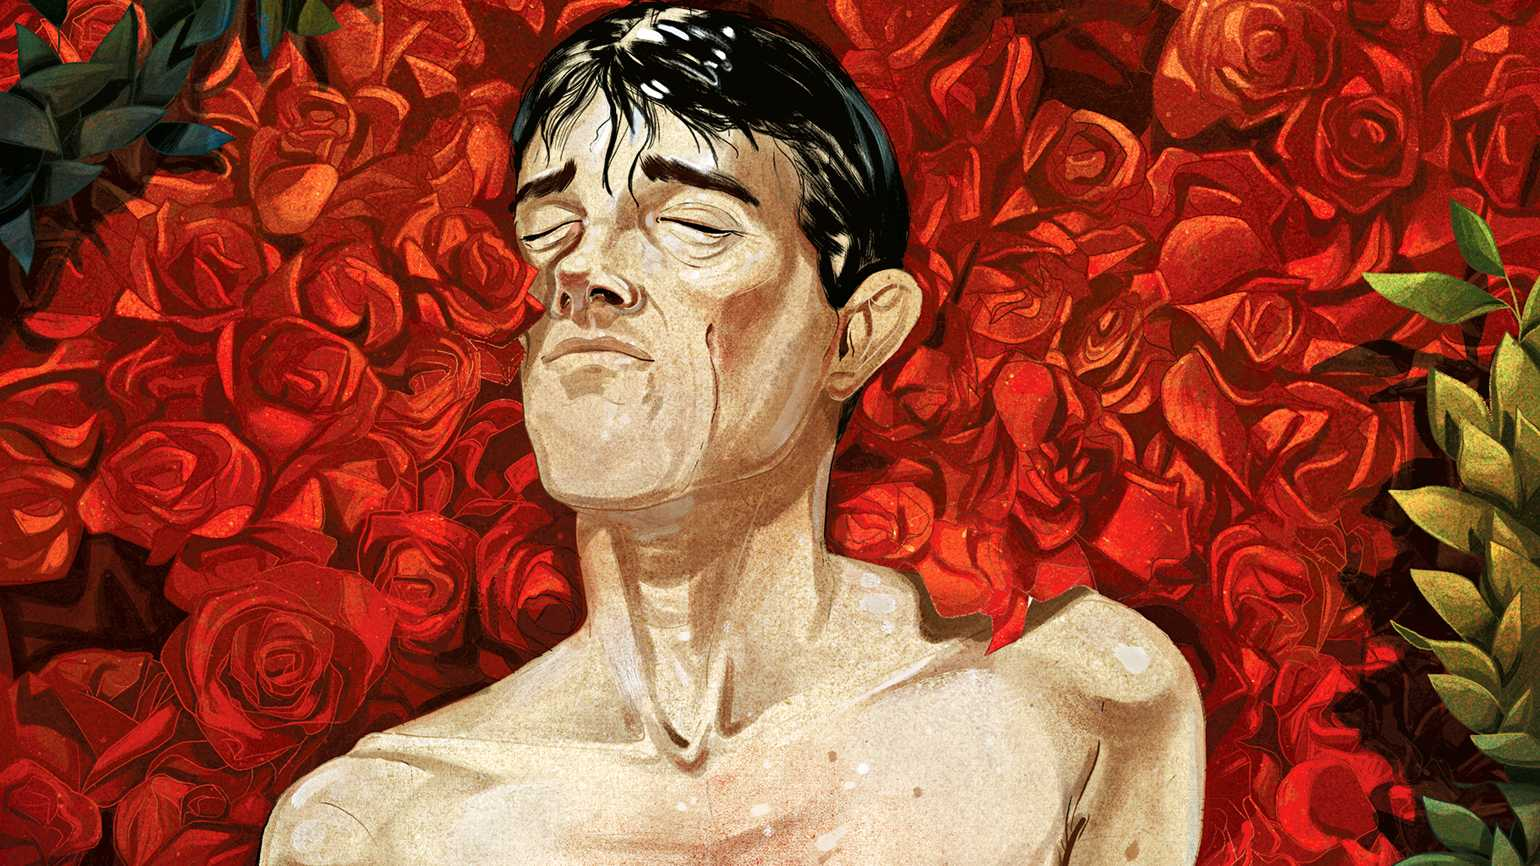 An illustration depicting a shirtless man enveloped with roses.